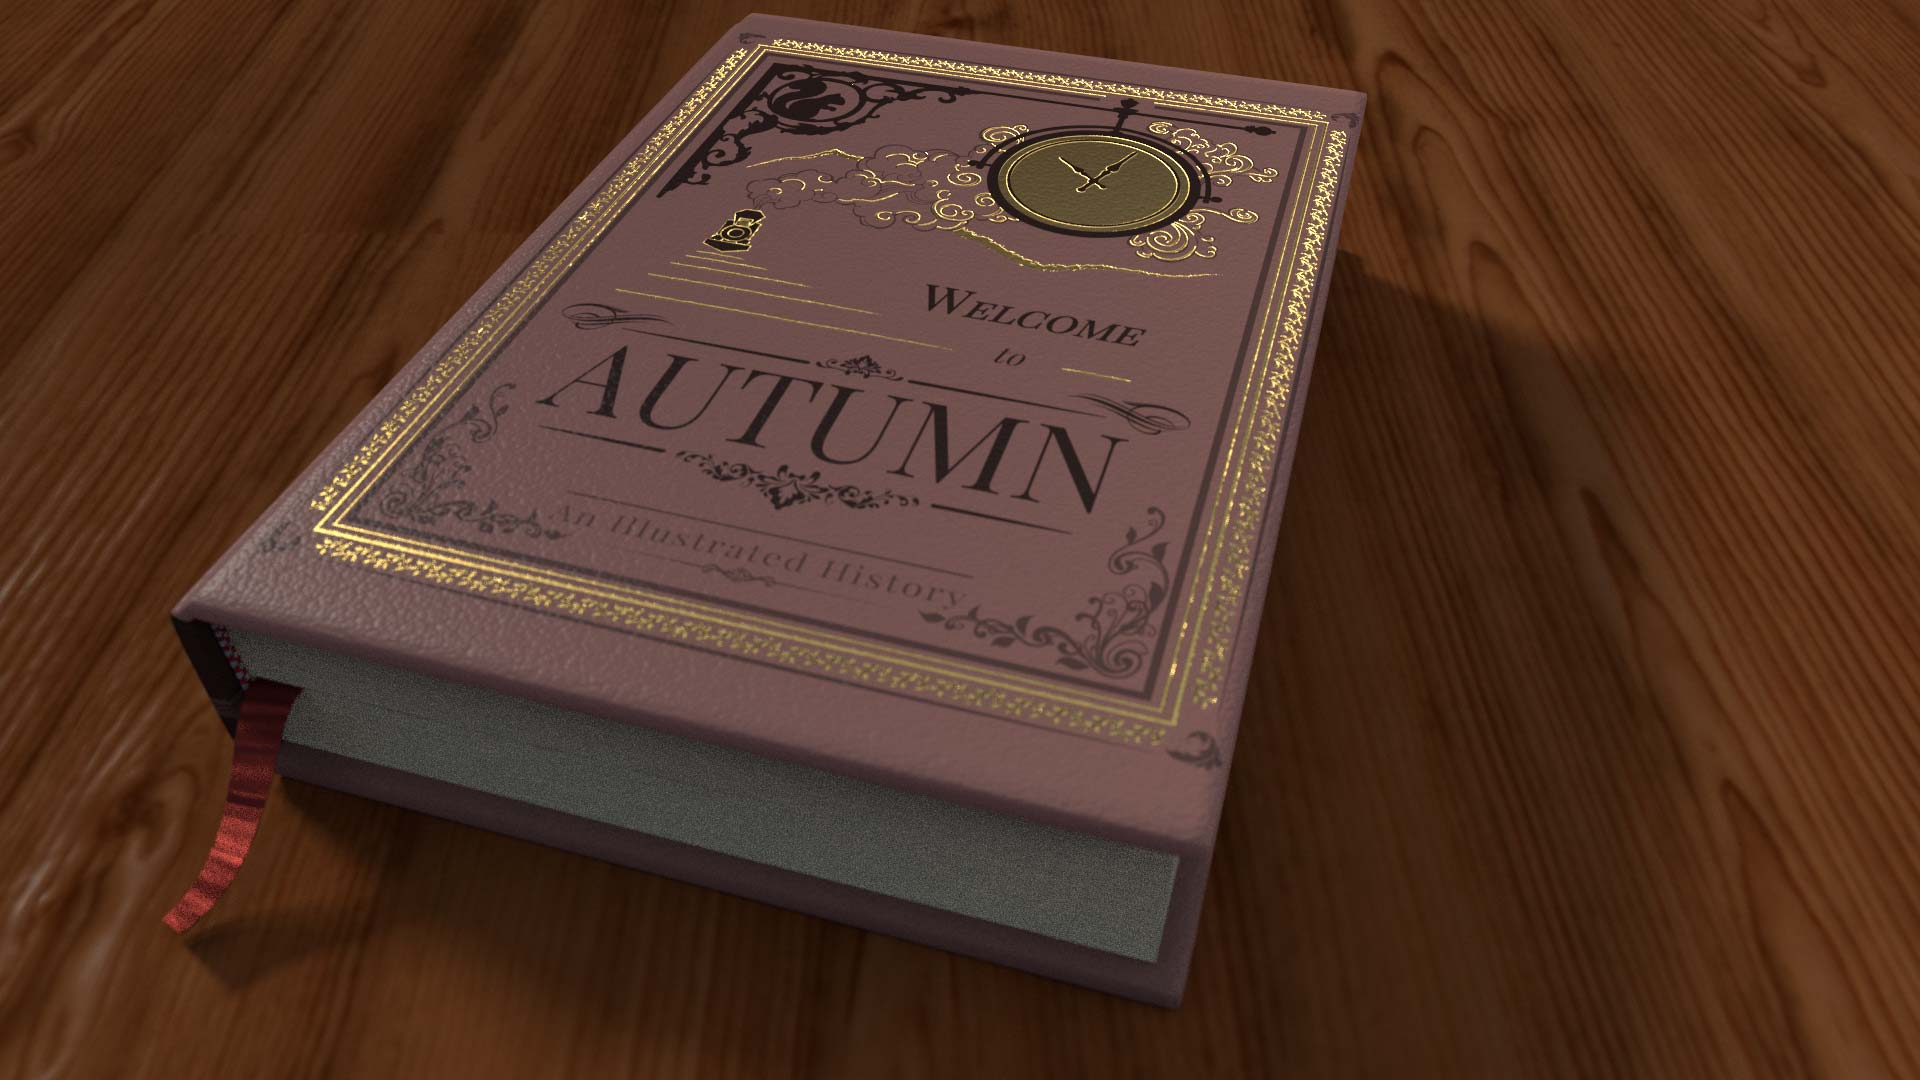 Welcome to Autumn book mockup